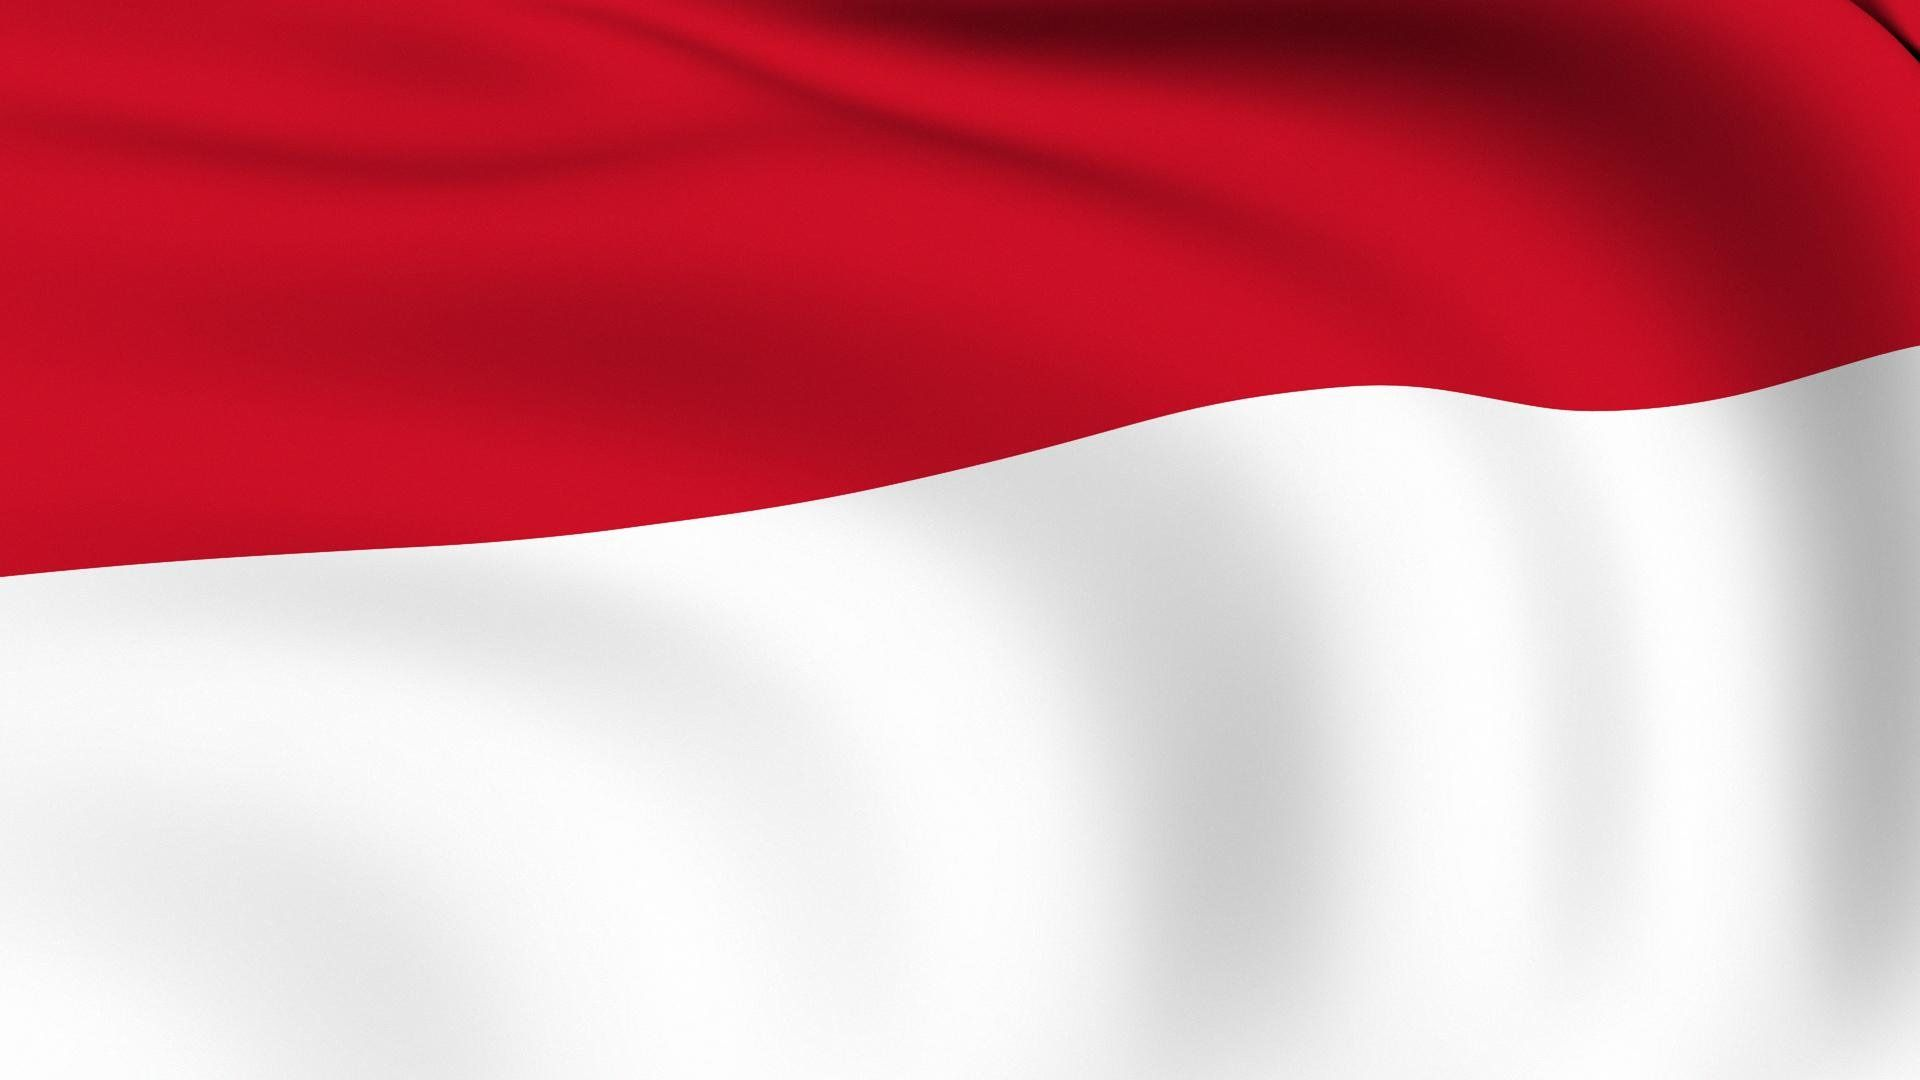 indonesia flag wallpapers top free indonesia flag backgrounds wallpaperaccess indonesia flag wallpapers top free